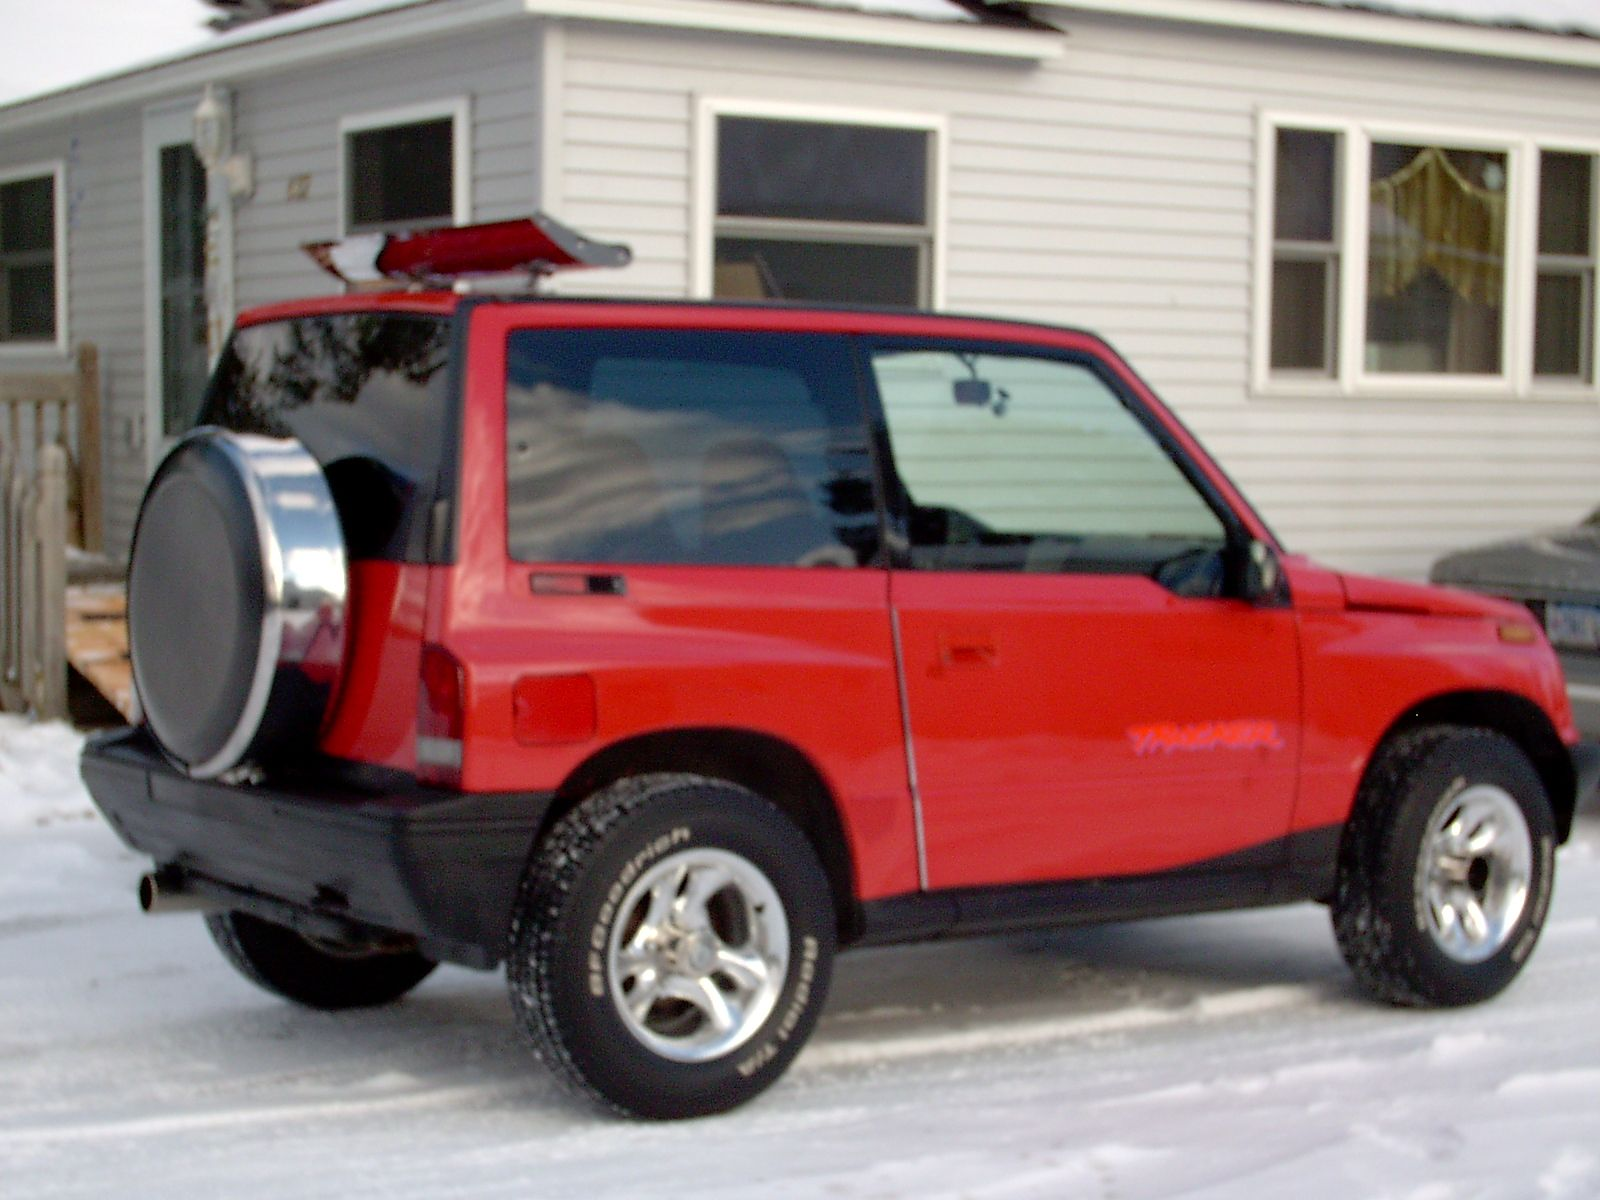 Img besides Geo Chevy Tracker Hardtop X together with D Throttle Body Removal Advice Tb also S L together with Cc. on suzuki sidekick geo tracker 4 door